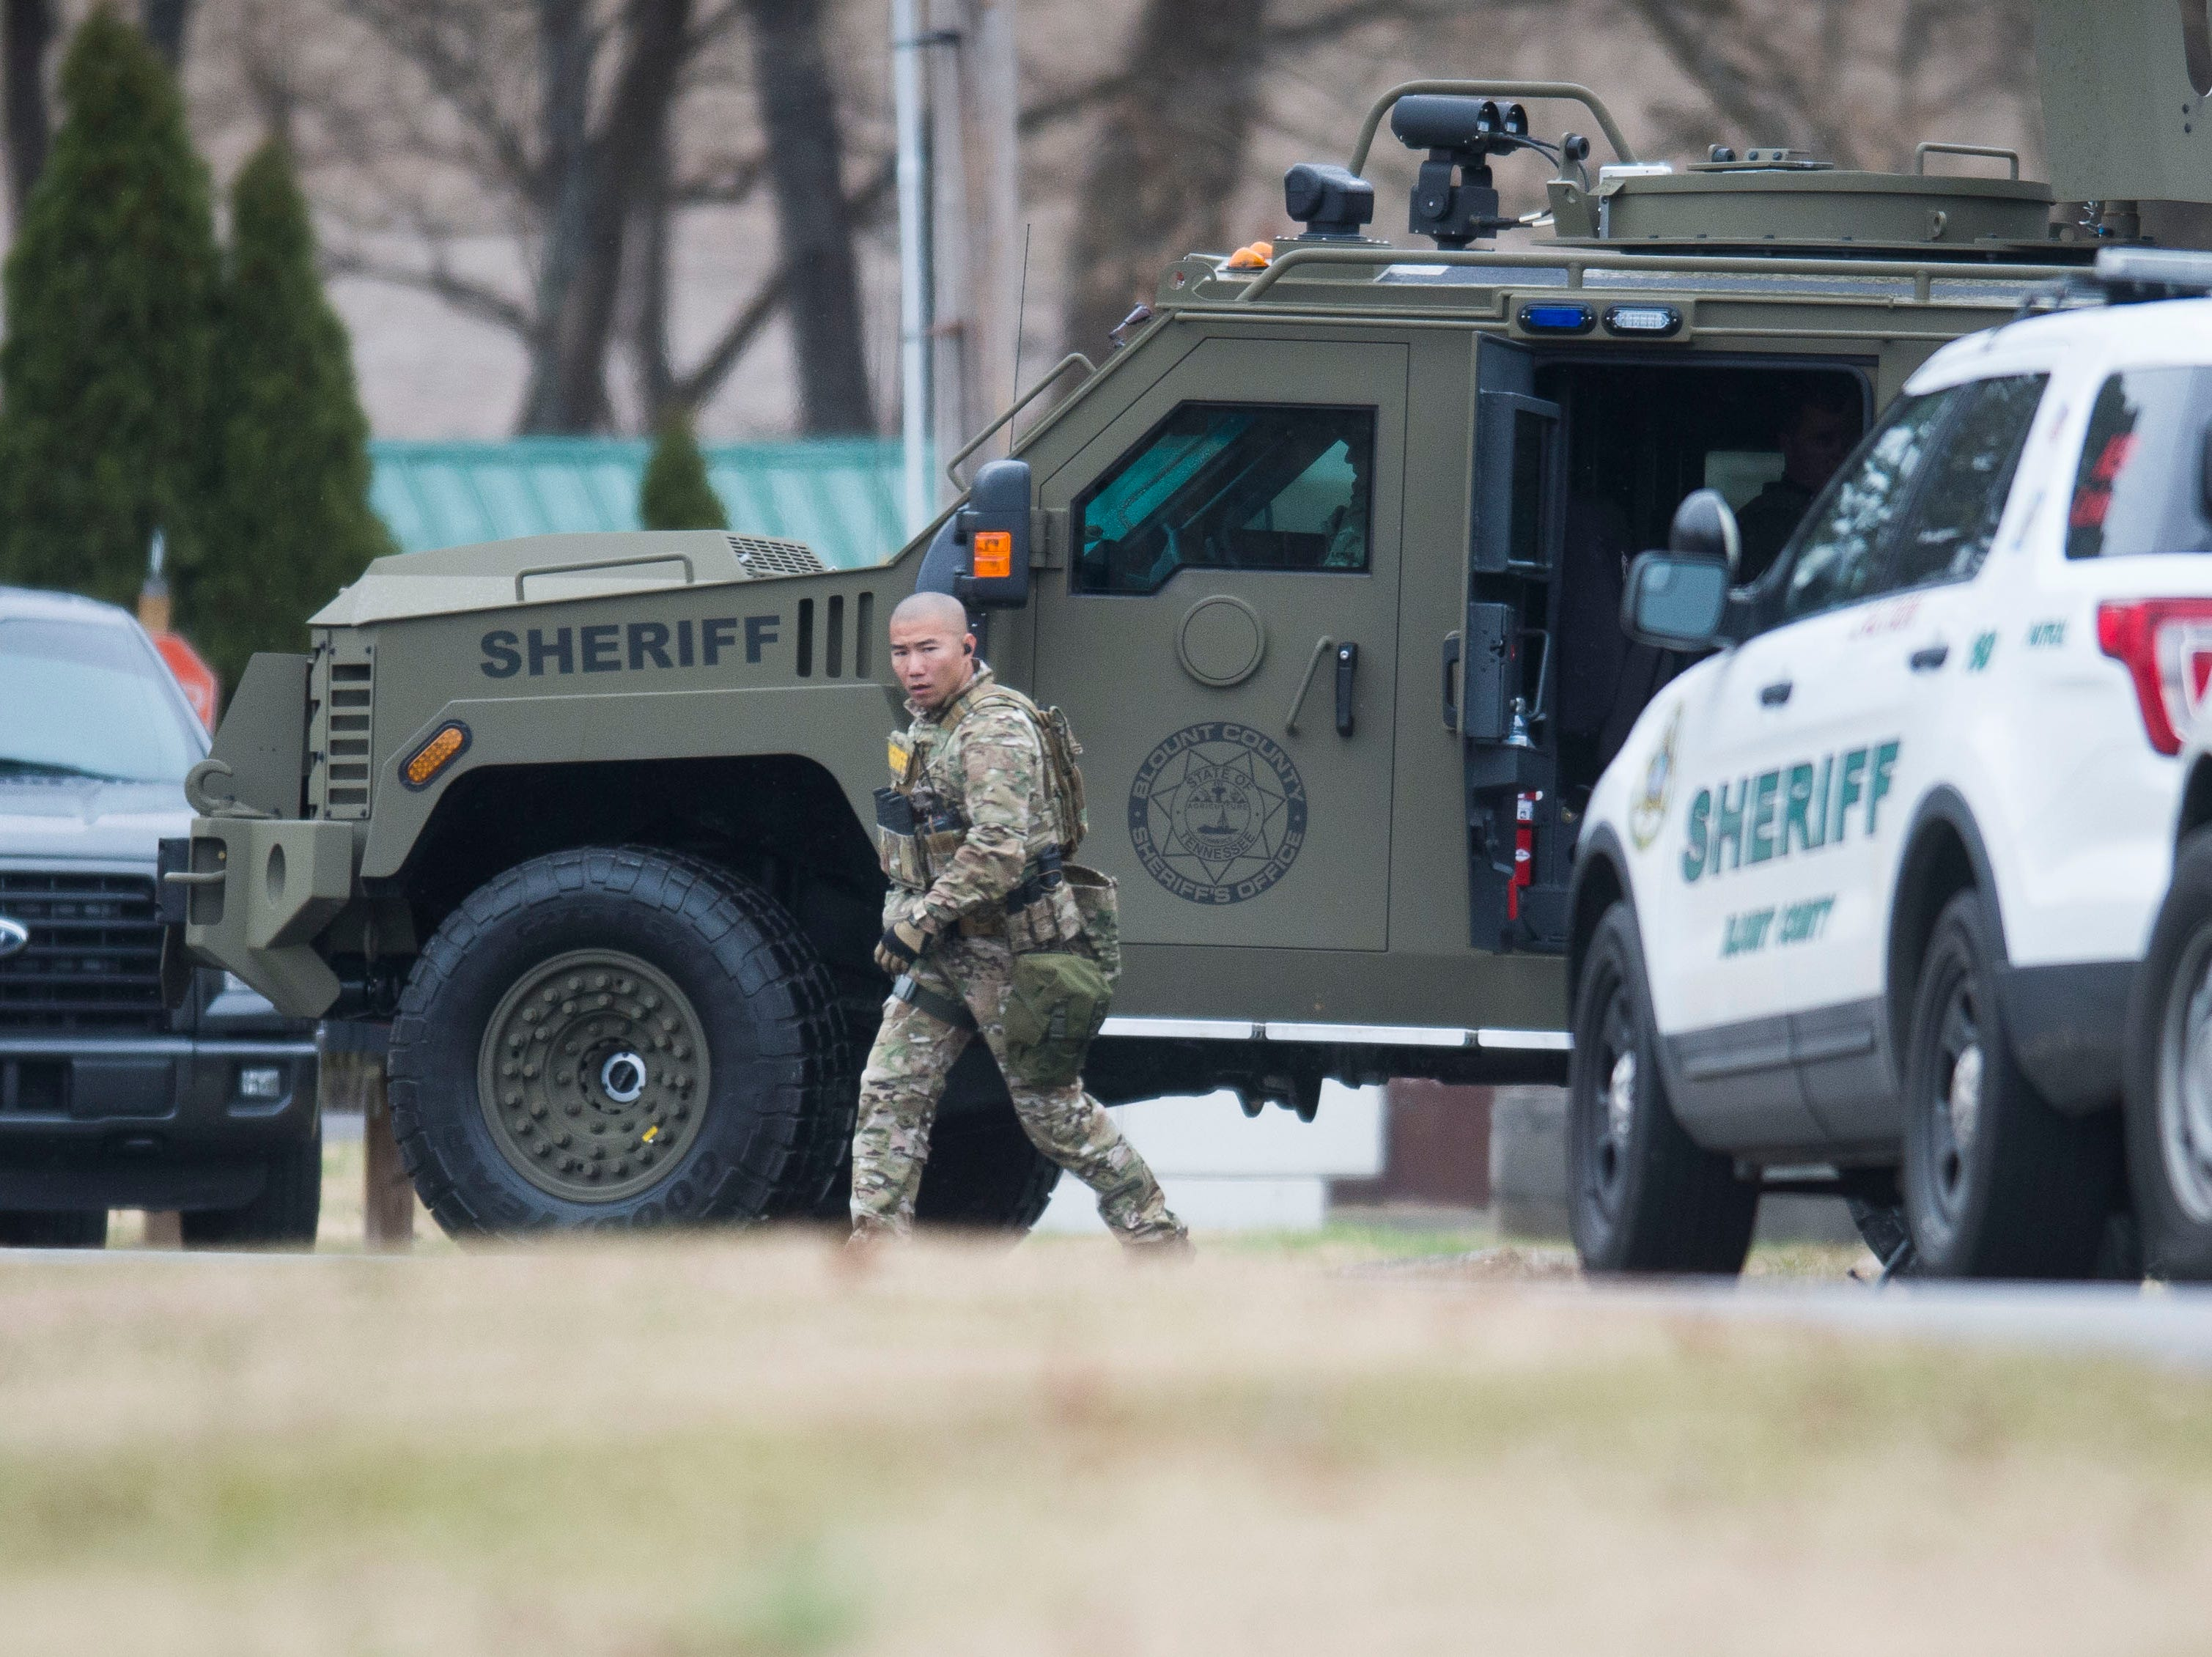 A Blount County Sheriff's officer walks outside an apartment building during a standoff involving one person believed to be armed at Riverside Manor Apartments Saturday, Dec. 8, 2018.